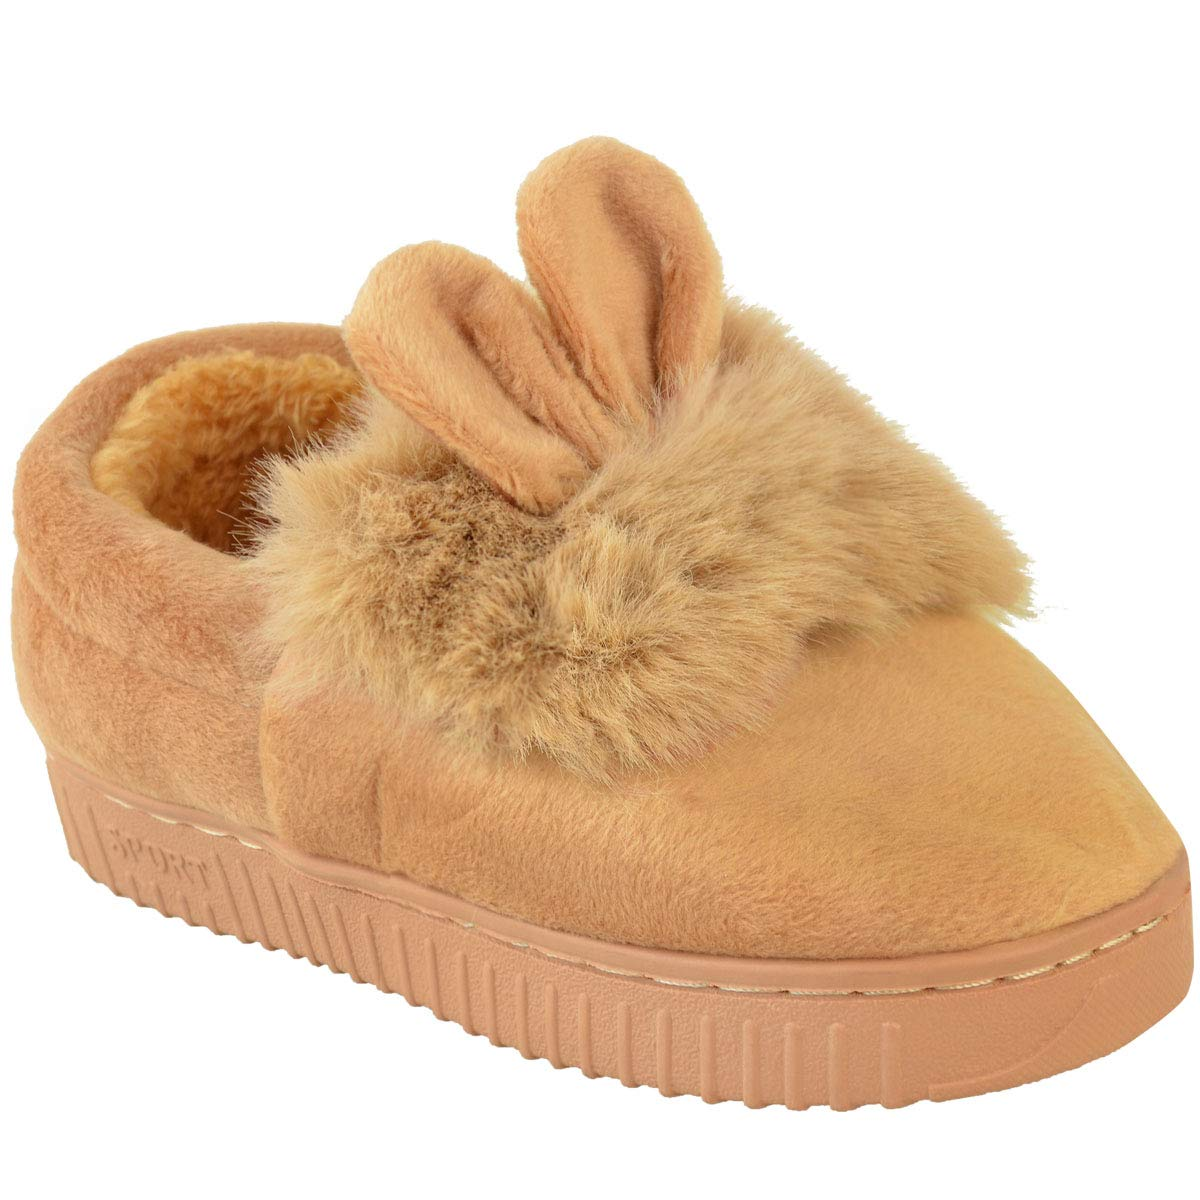 Fashion Thirsty Girls Kids Childrens Fluffy Faux Fur Indoor Slippers Winter Warm Cute Comfy New by Heelberry/®